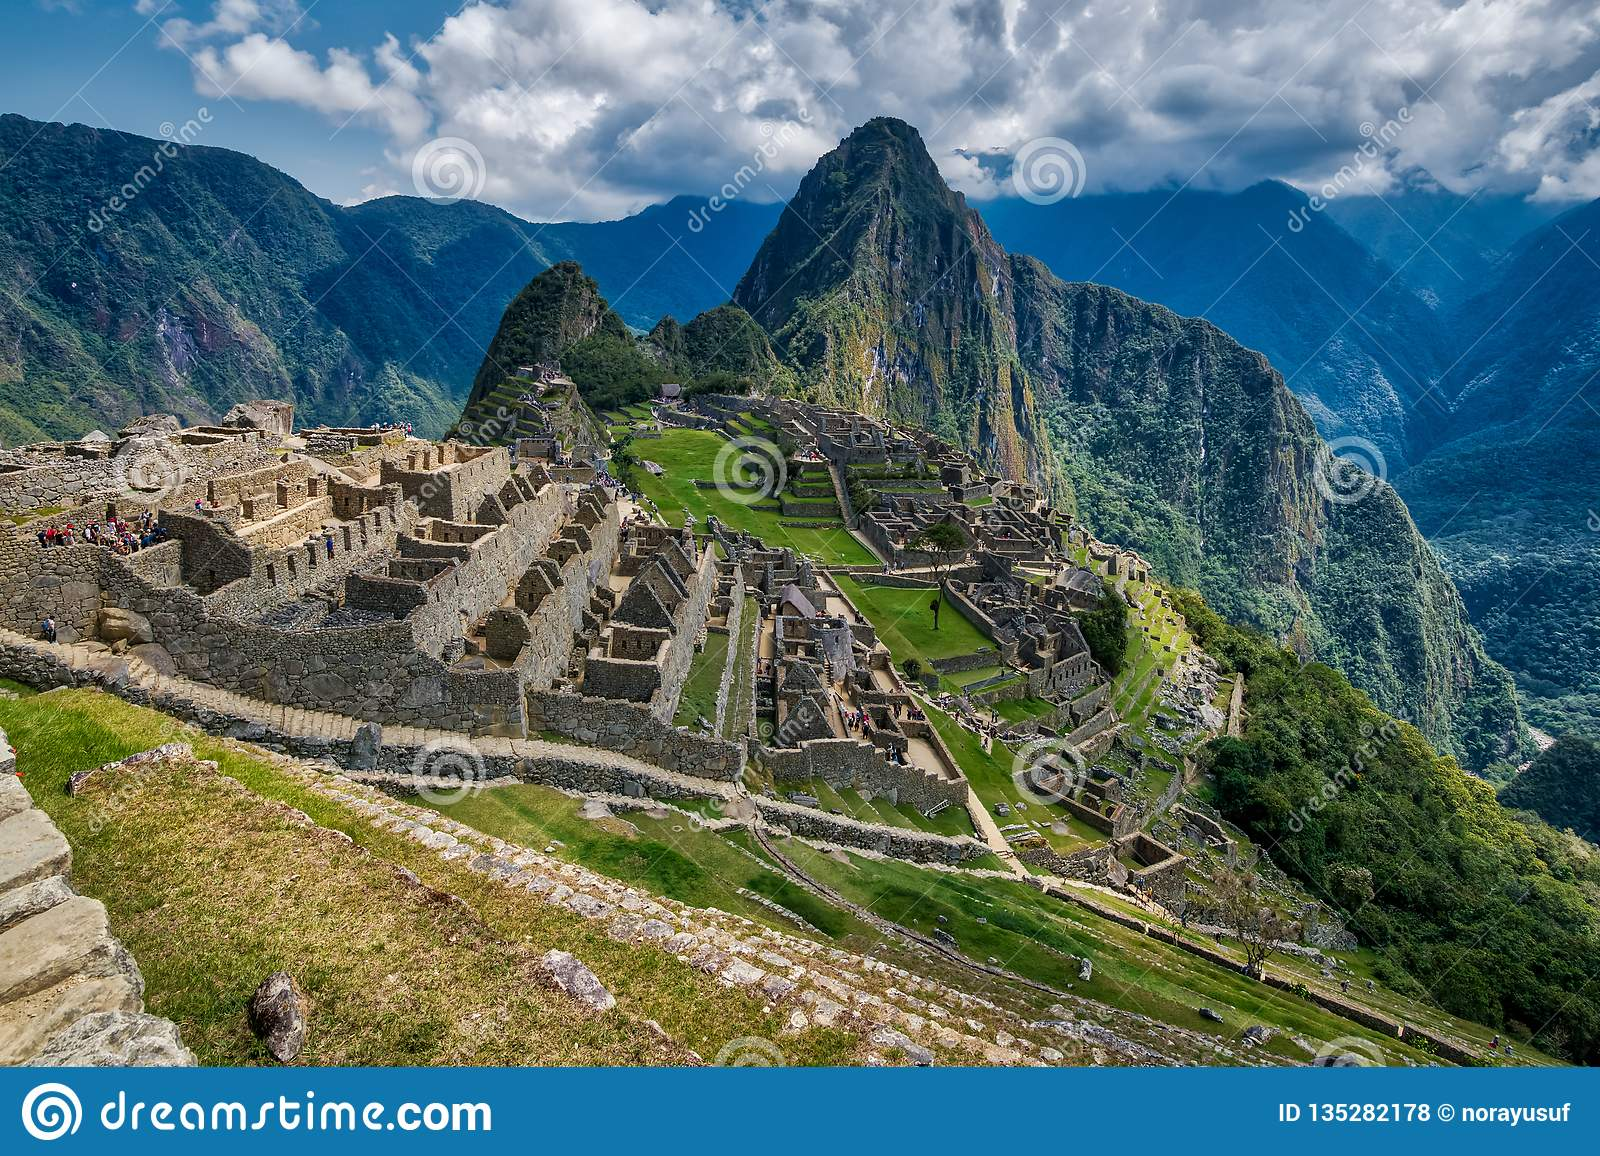 A view of the ruins of Machu Picchu